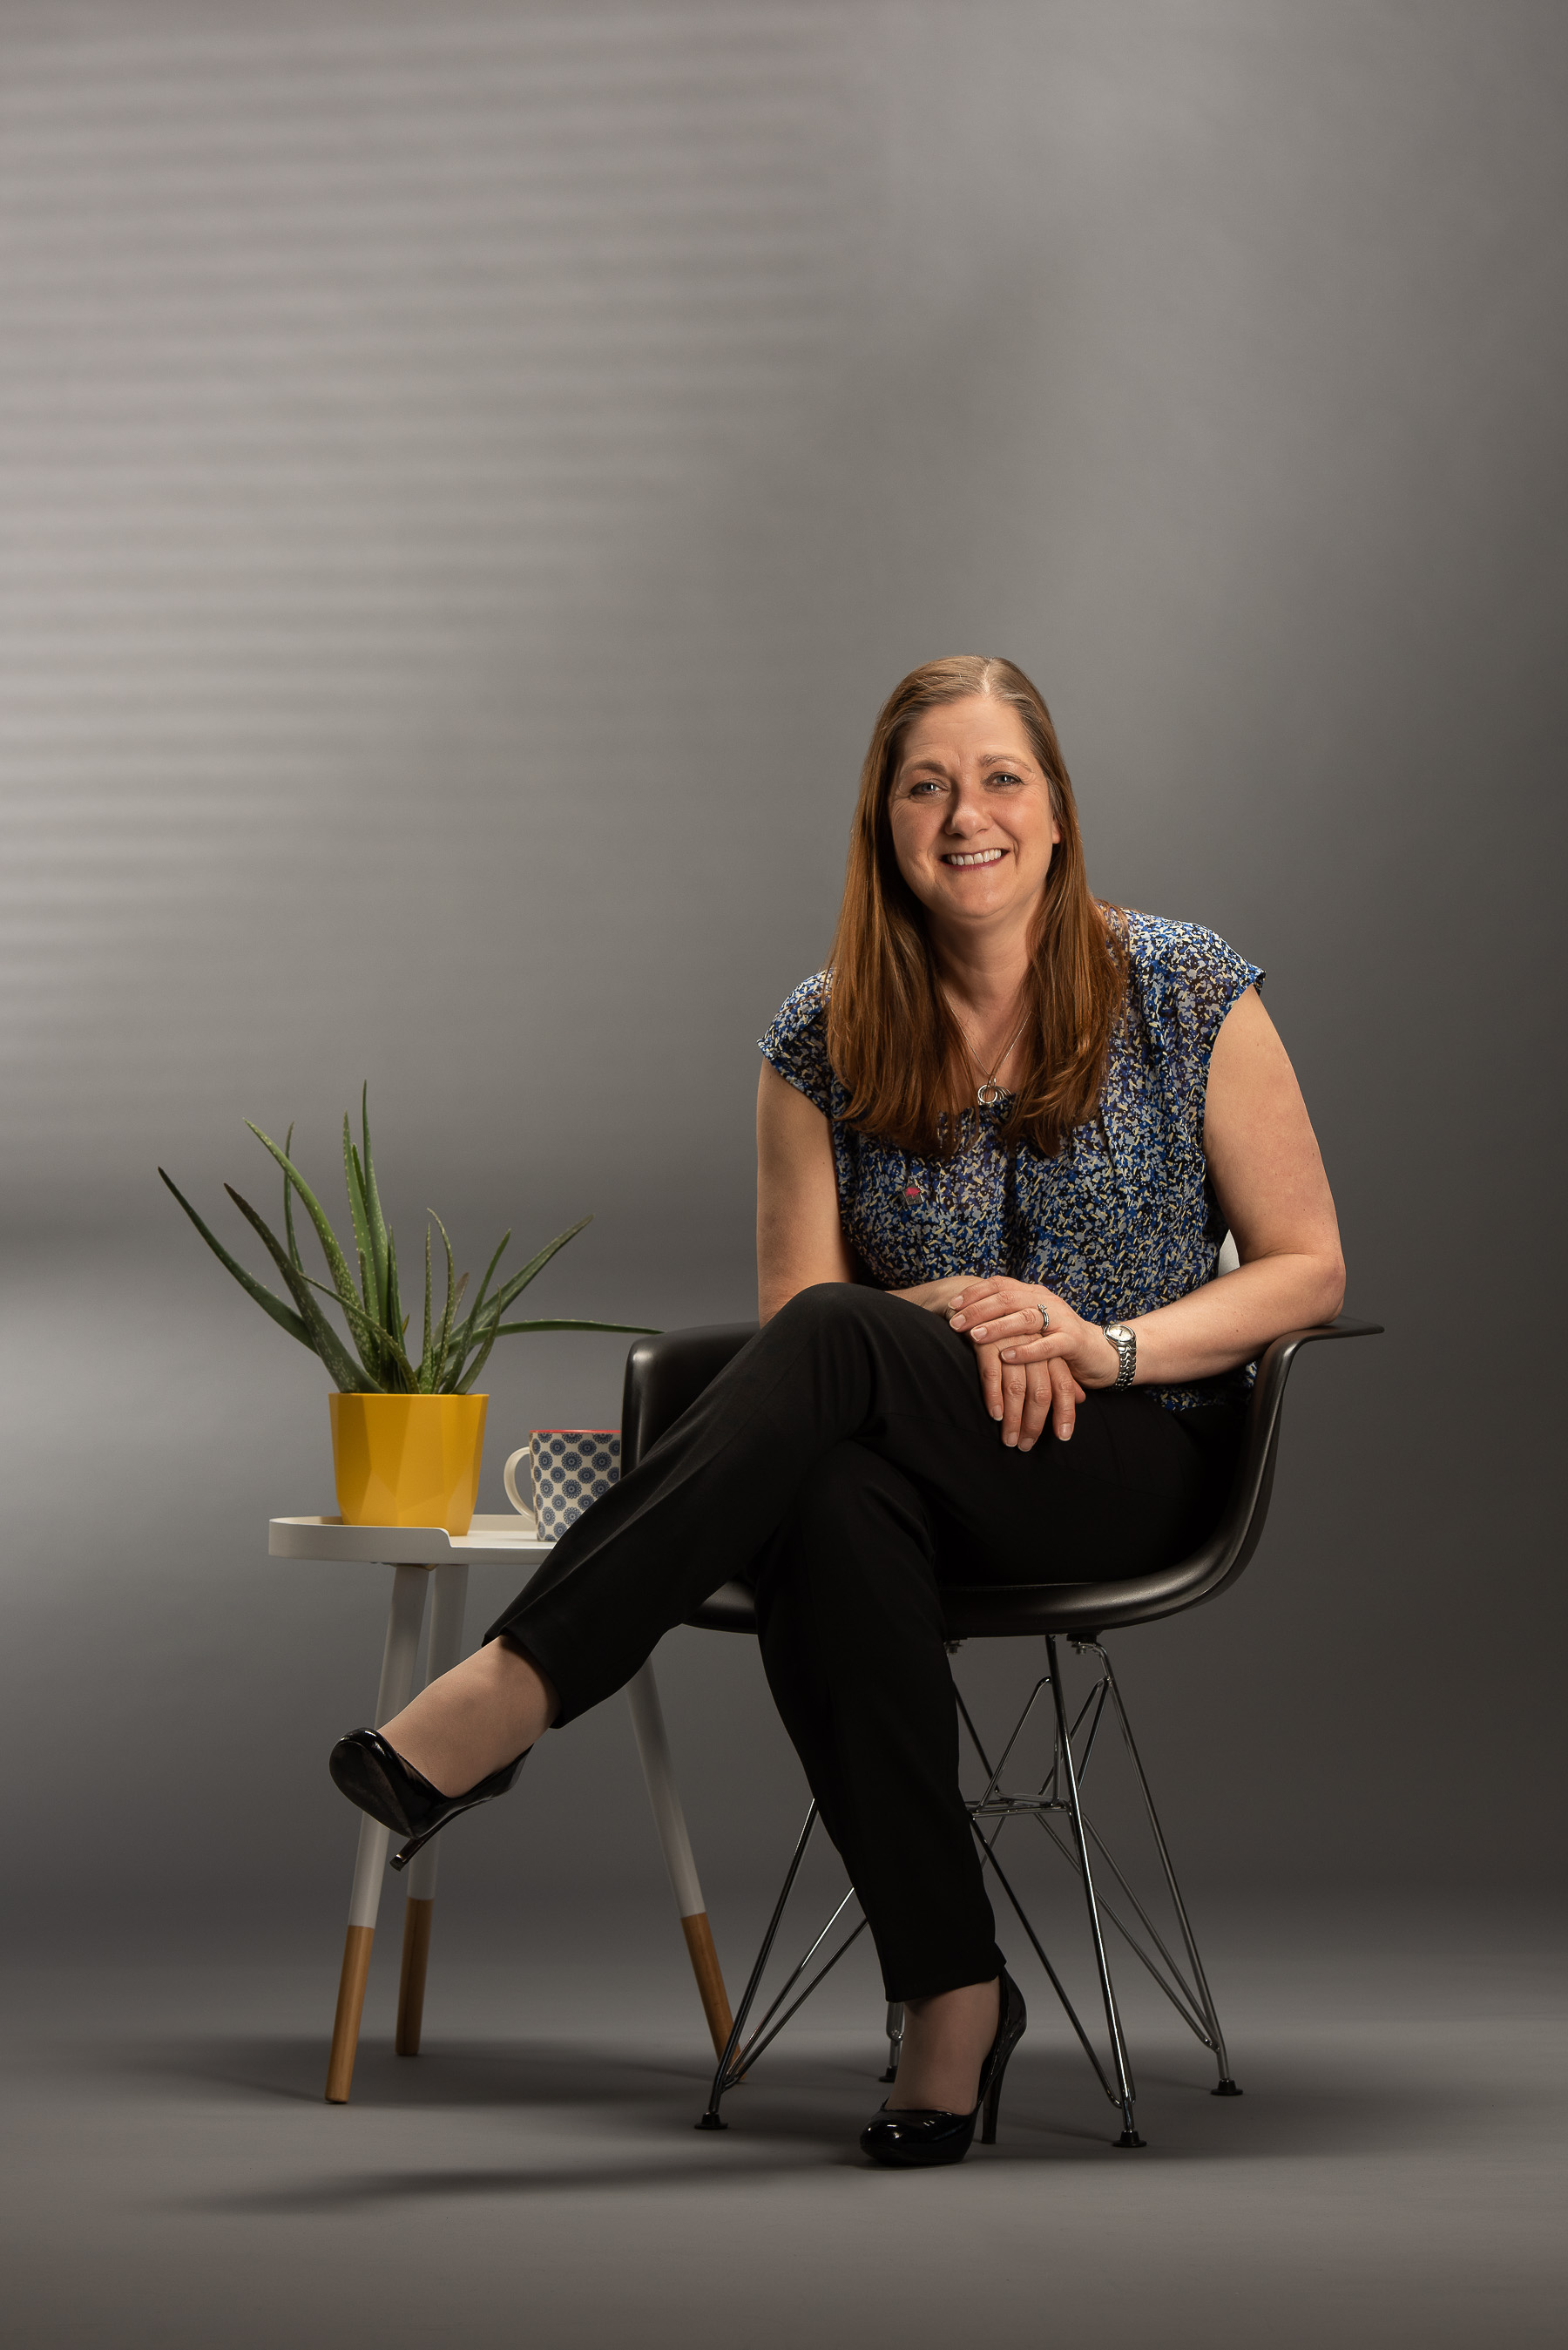 Portrait photograph of business owner sitting on a chair with table and plant pot